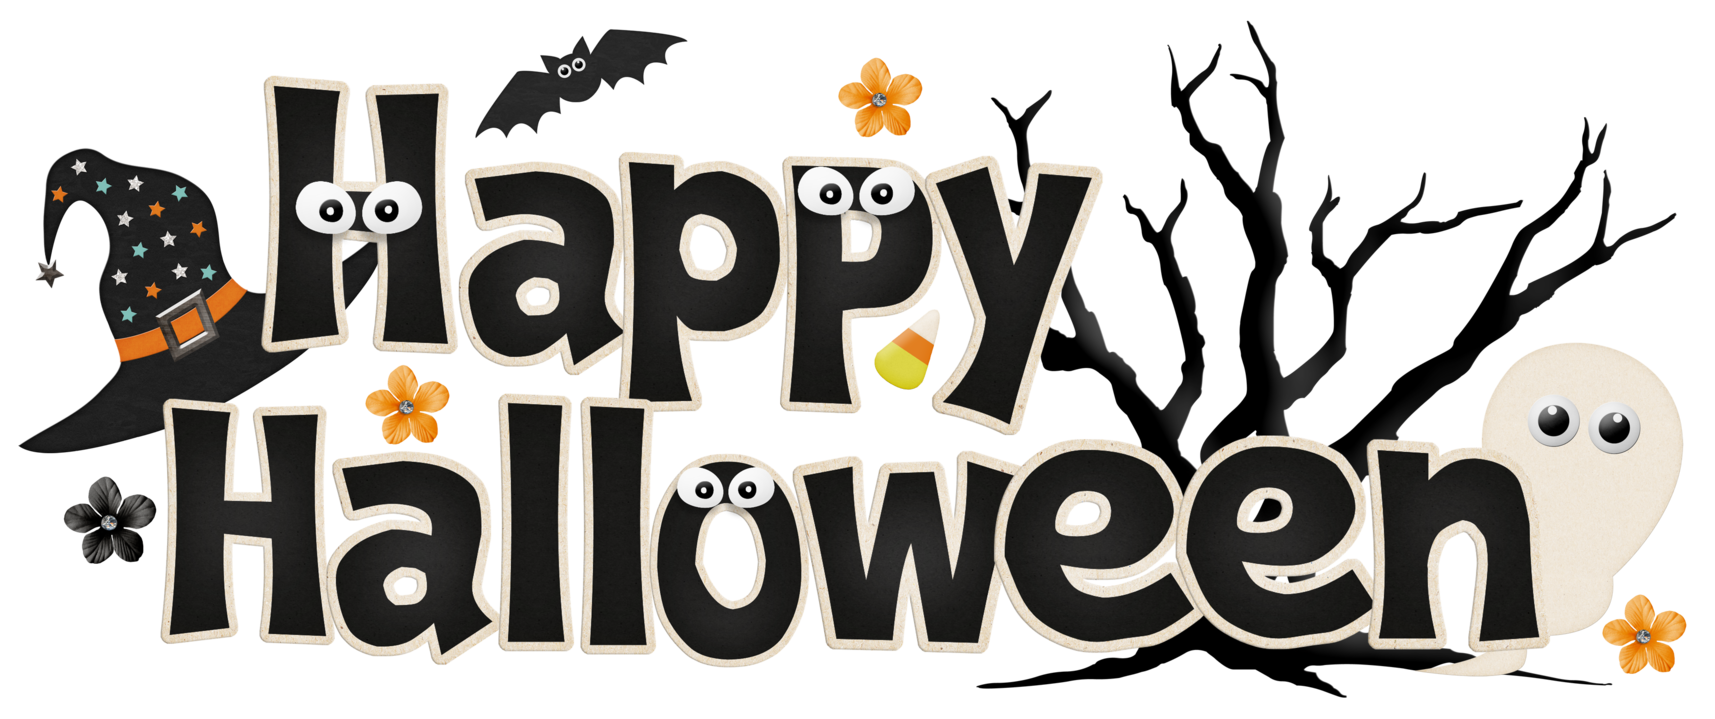 Happy halloween clipart black and white vector black and white download Month of october clipart free clipart images clipartwiz 2 clipartix ... vector black and white download